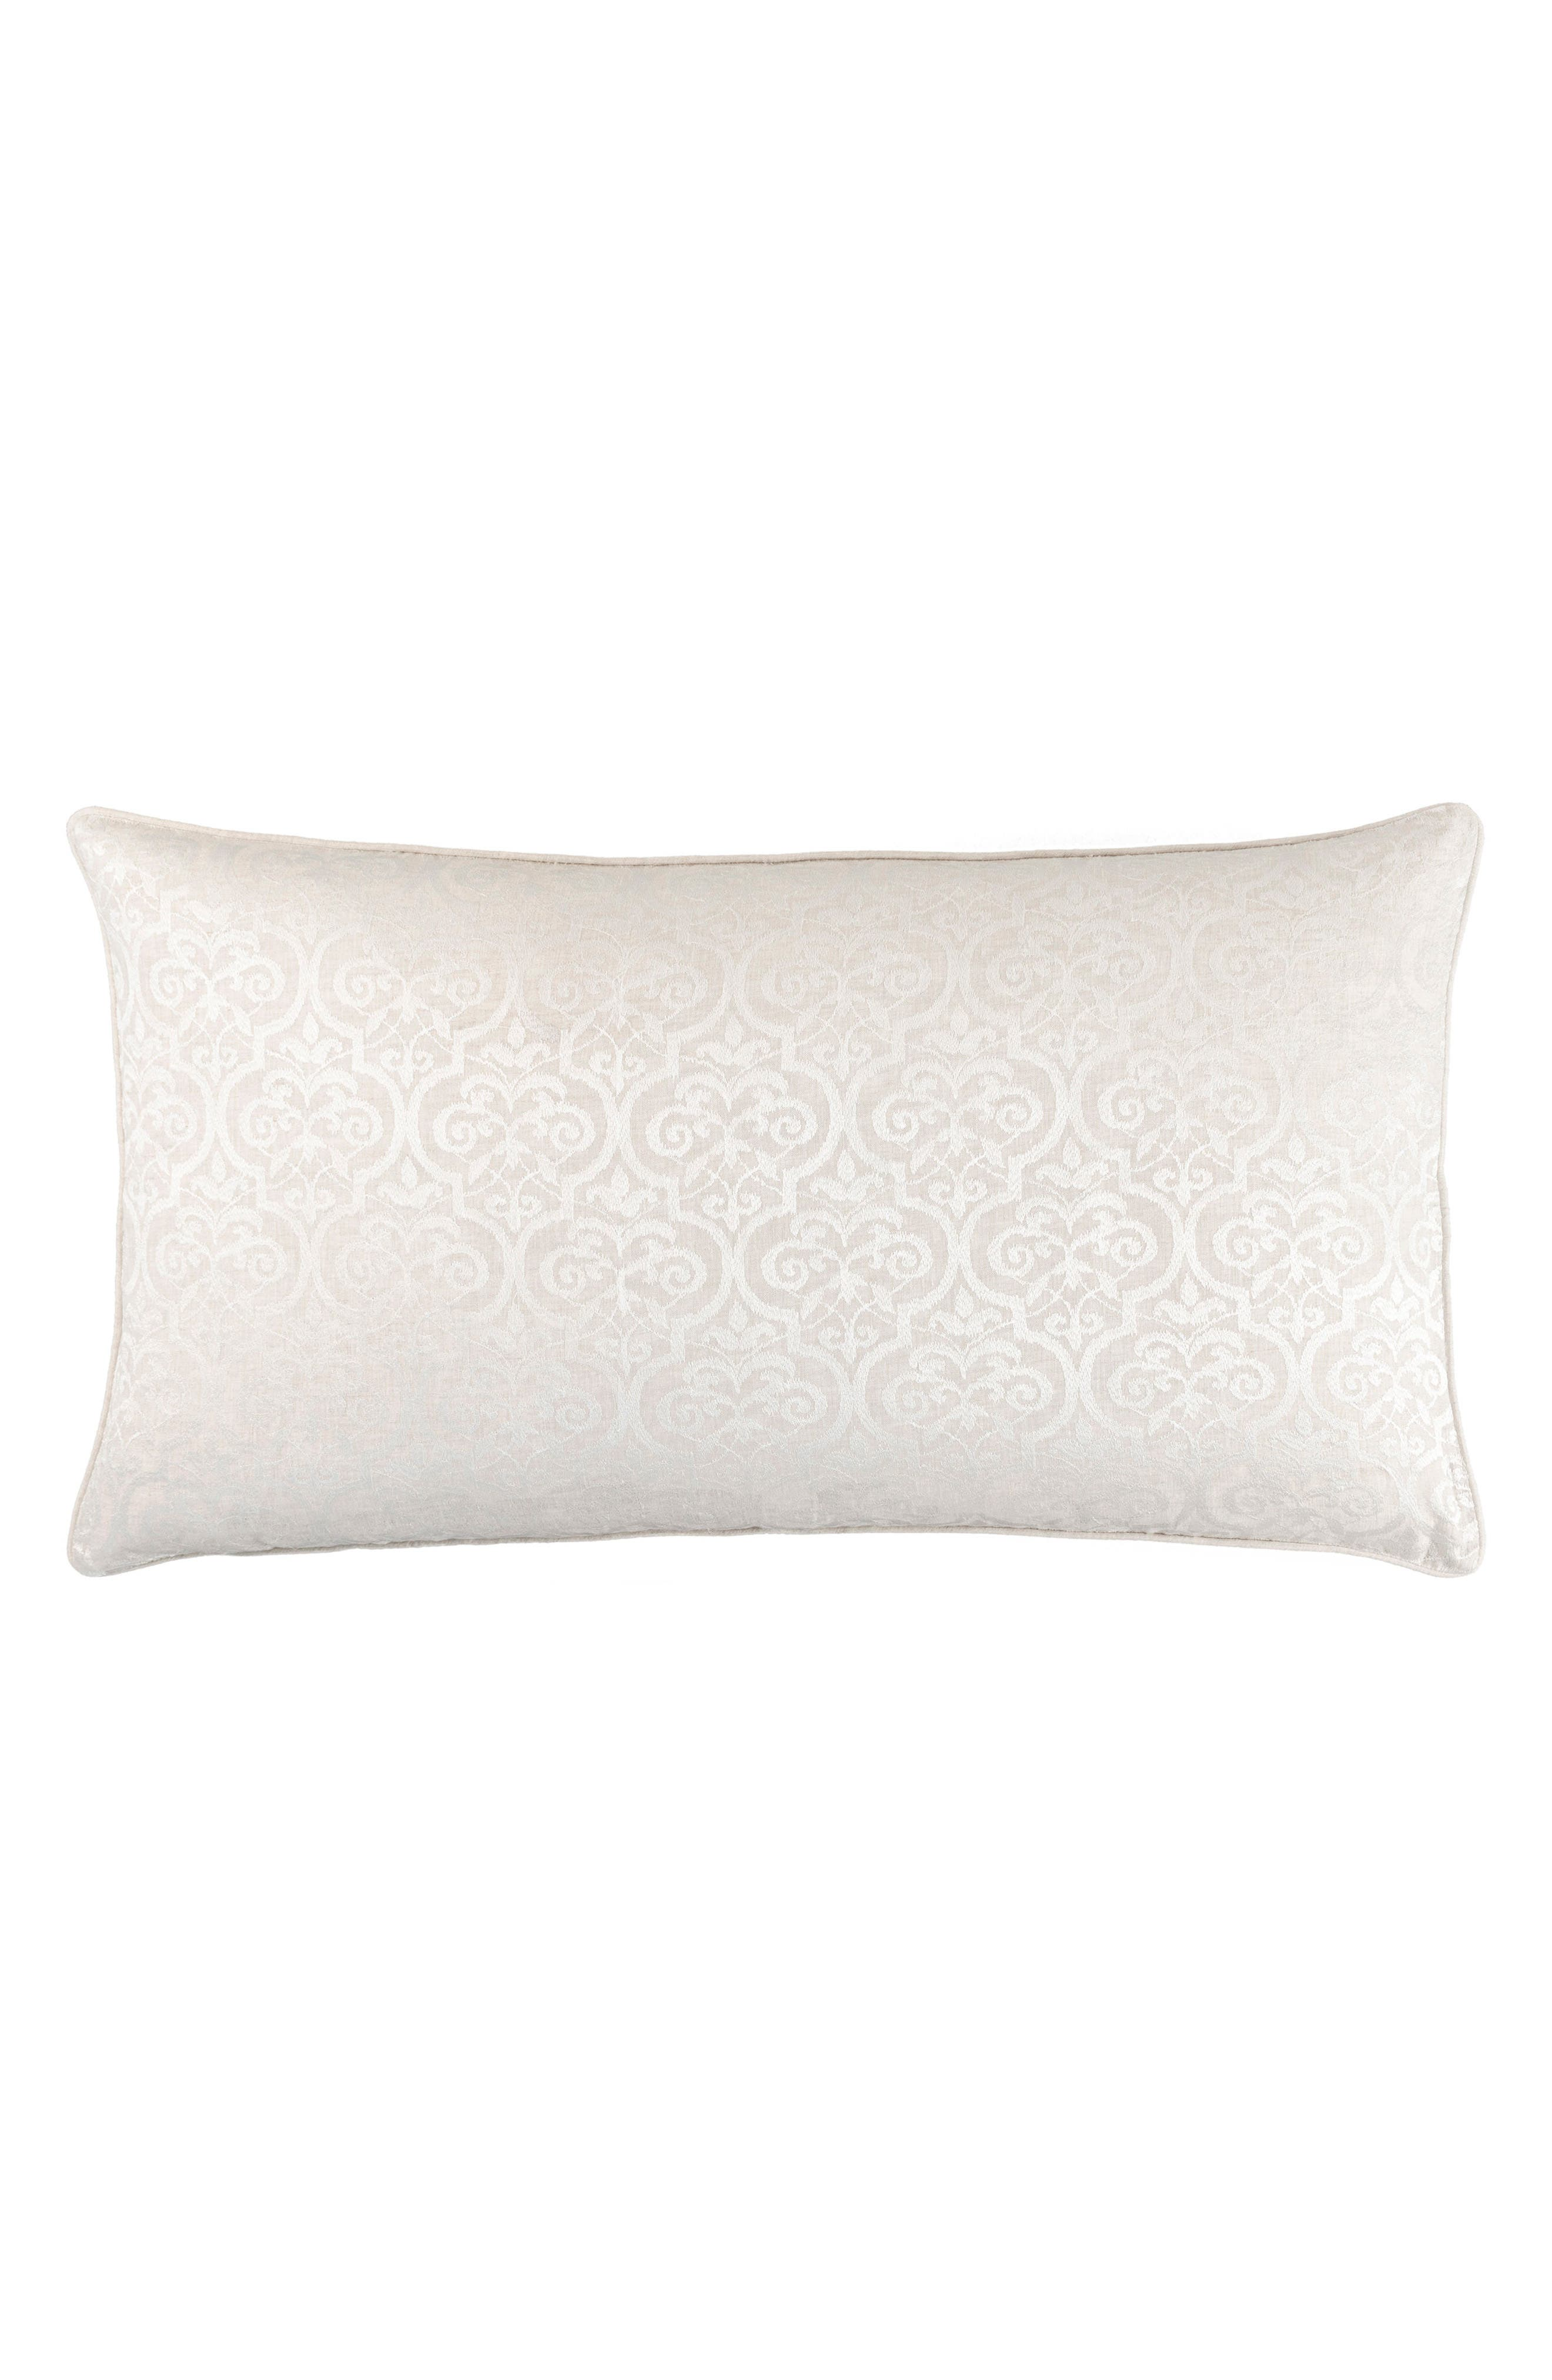 Gwendolyn Embroidered Accent Pillow,                             Main thumbnail 1, color,                             100